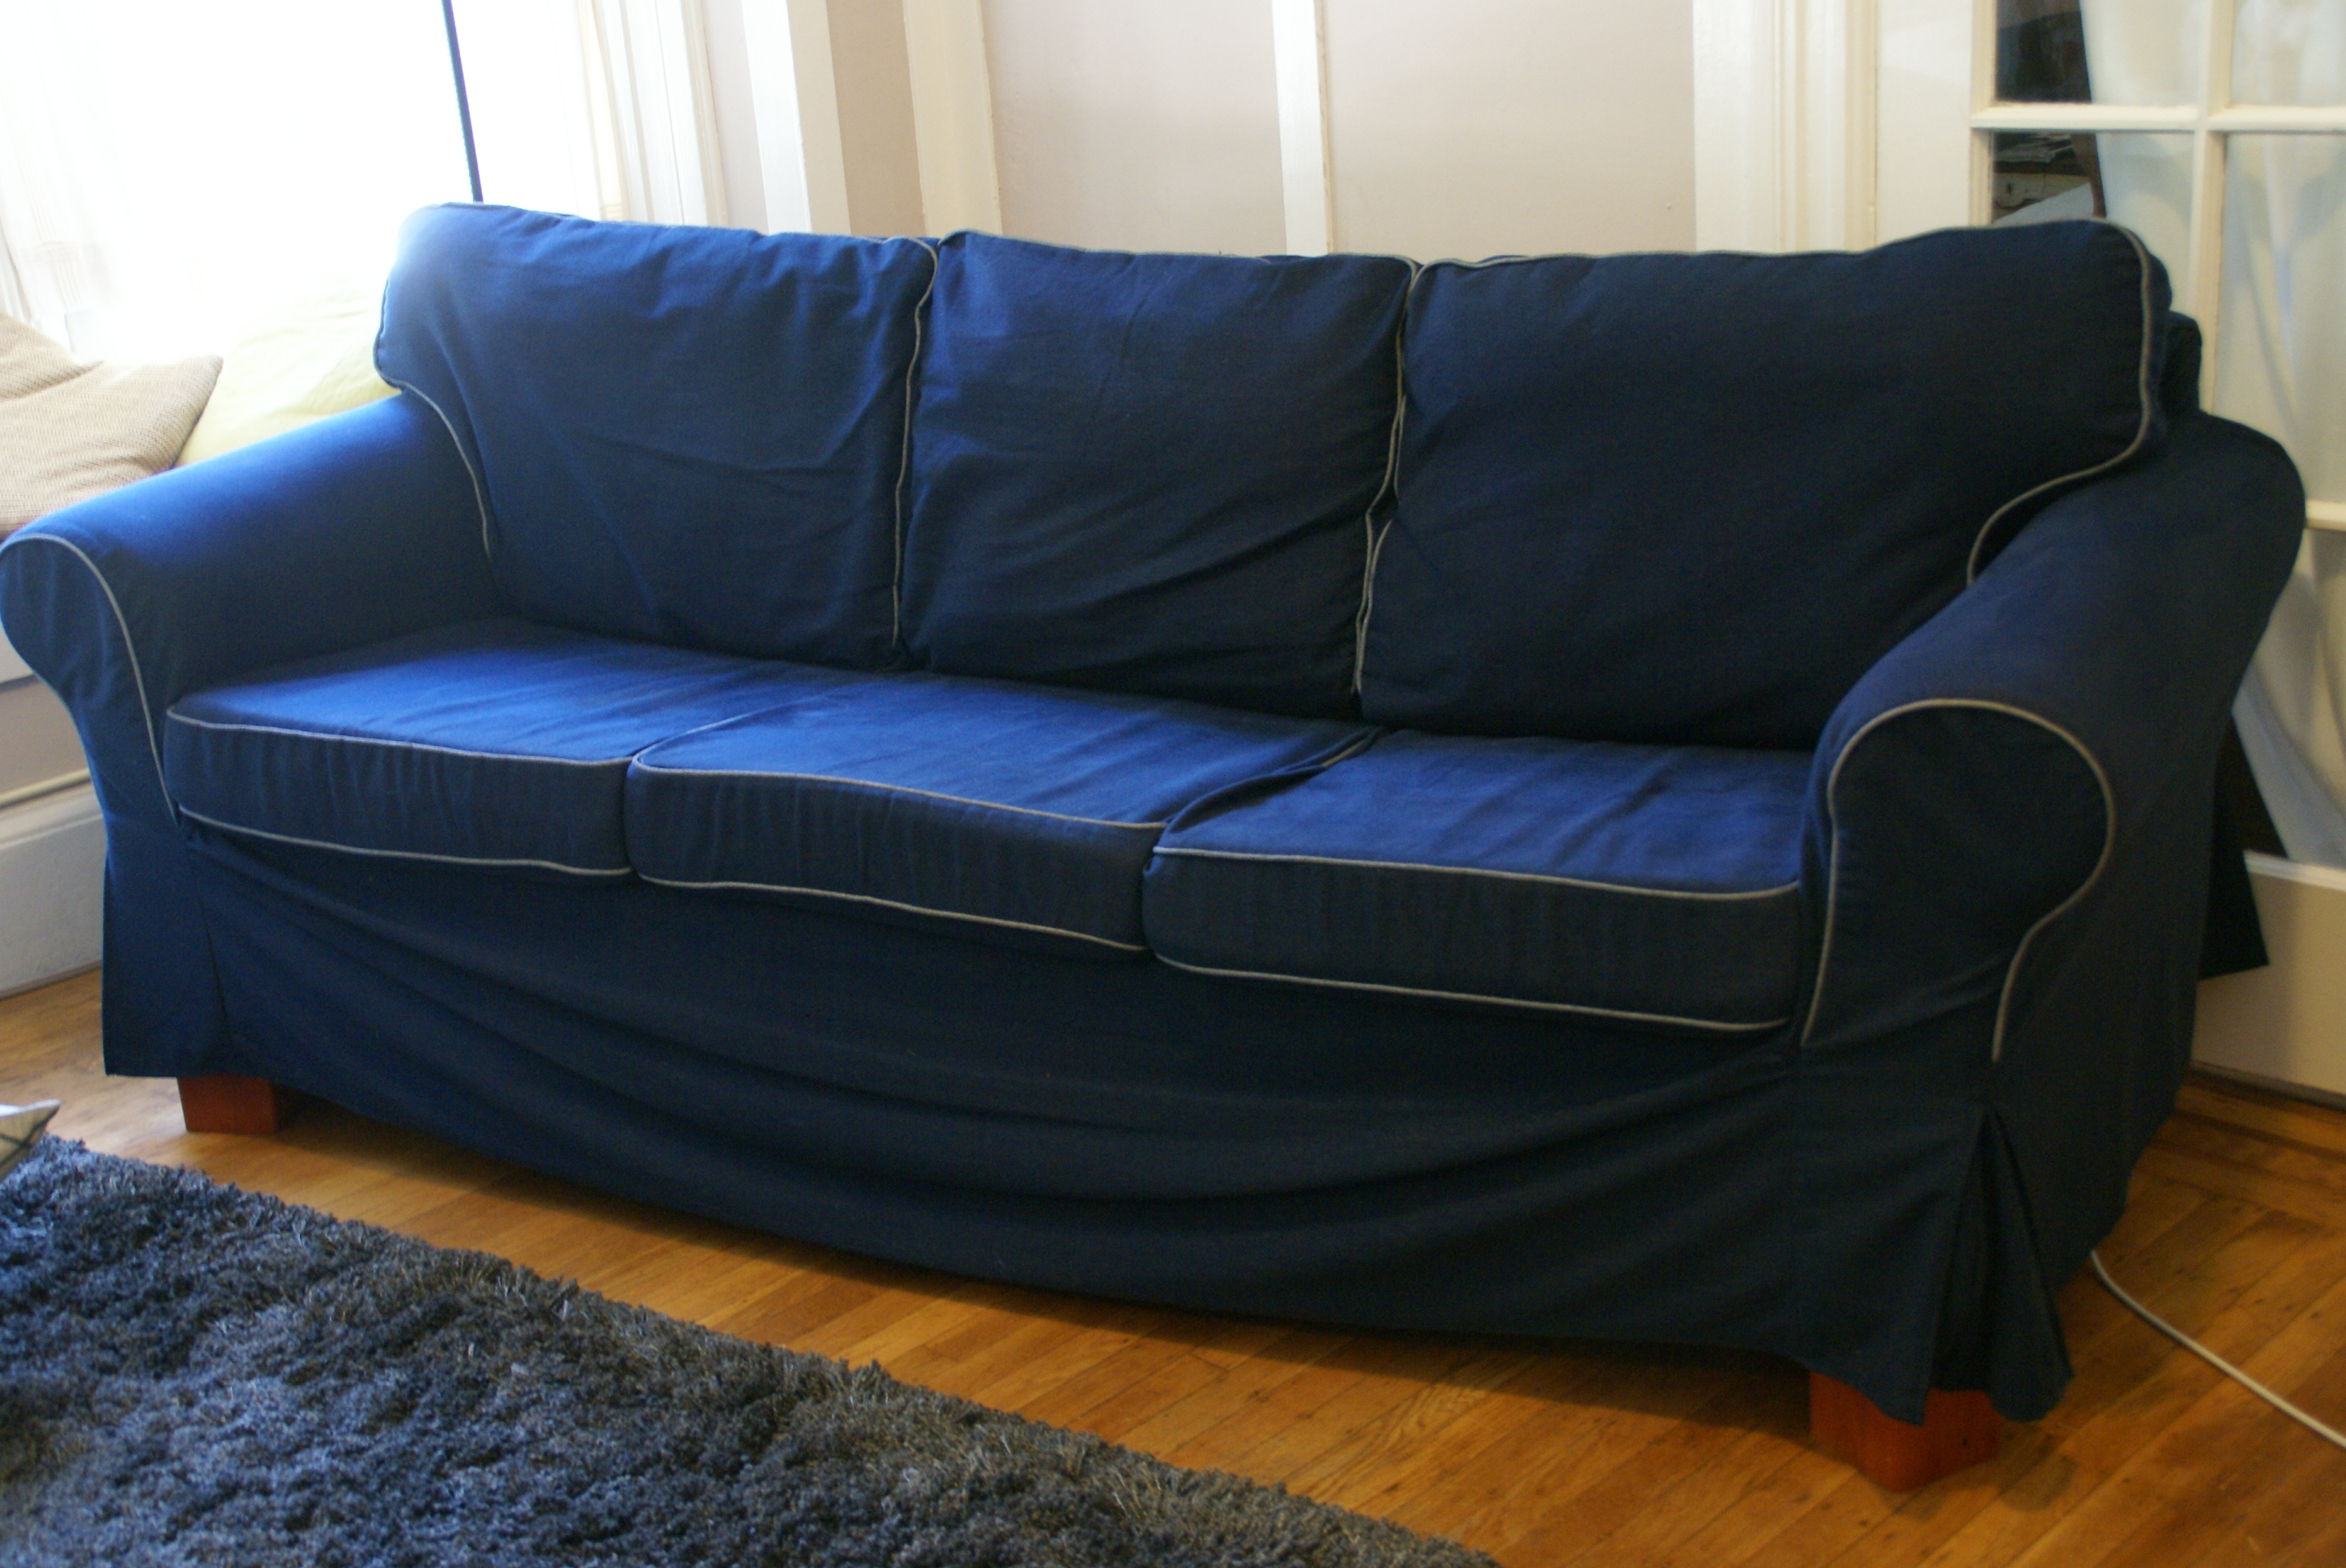 Kautsch Sofa Sofa Ikea Ektorp Excellent Ikea Sectional Sofa Navy Blue Sofa